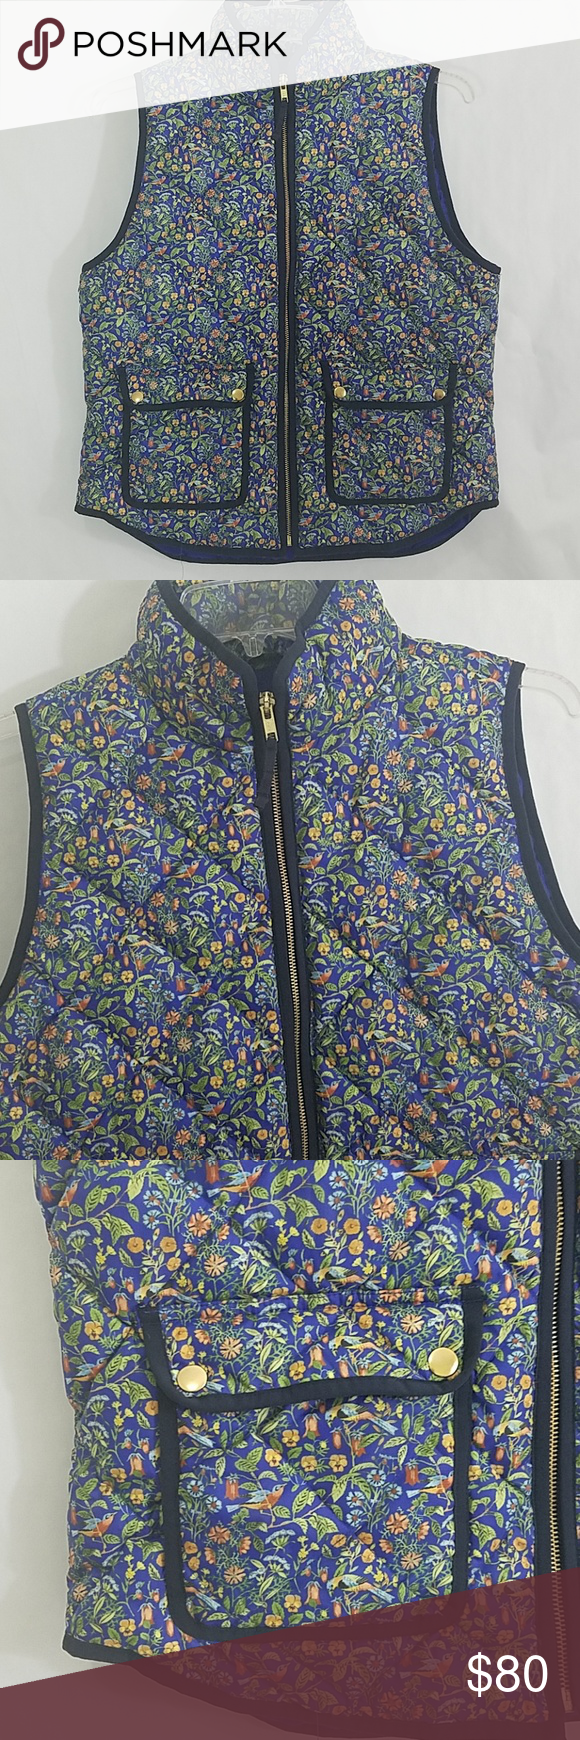 095db50d38 J Crew Liberty Fabric Quilted Down Vest Blue floral vest made from ...